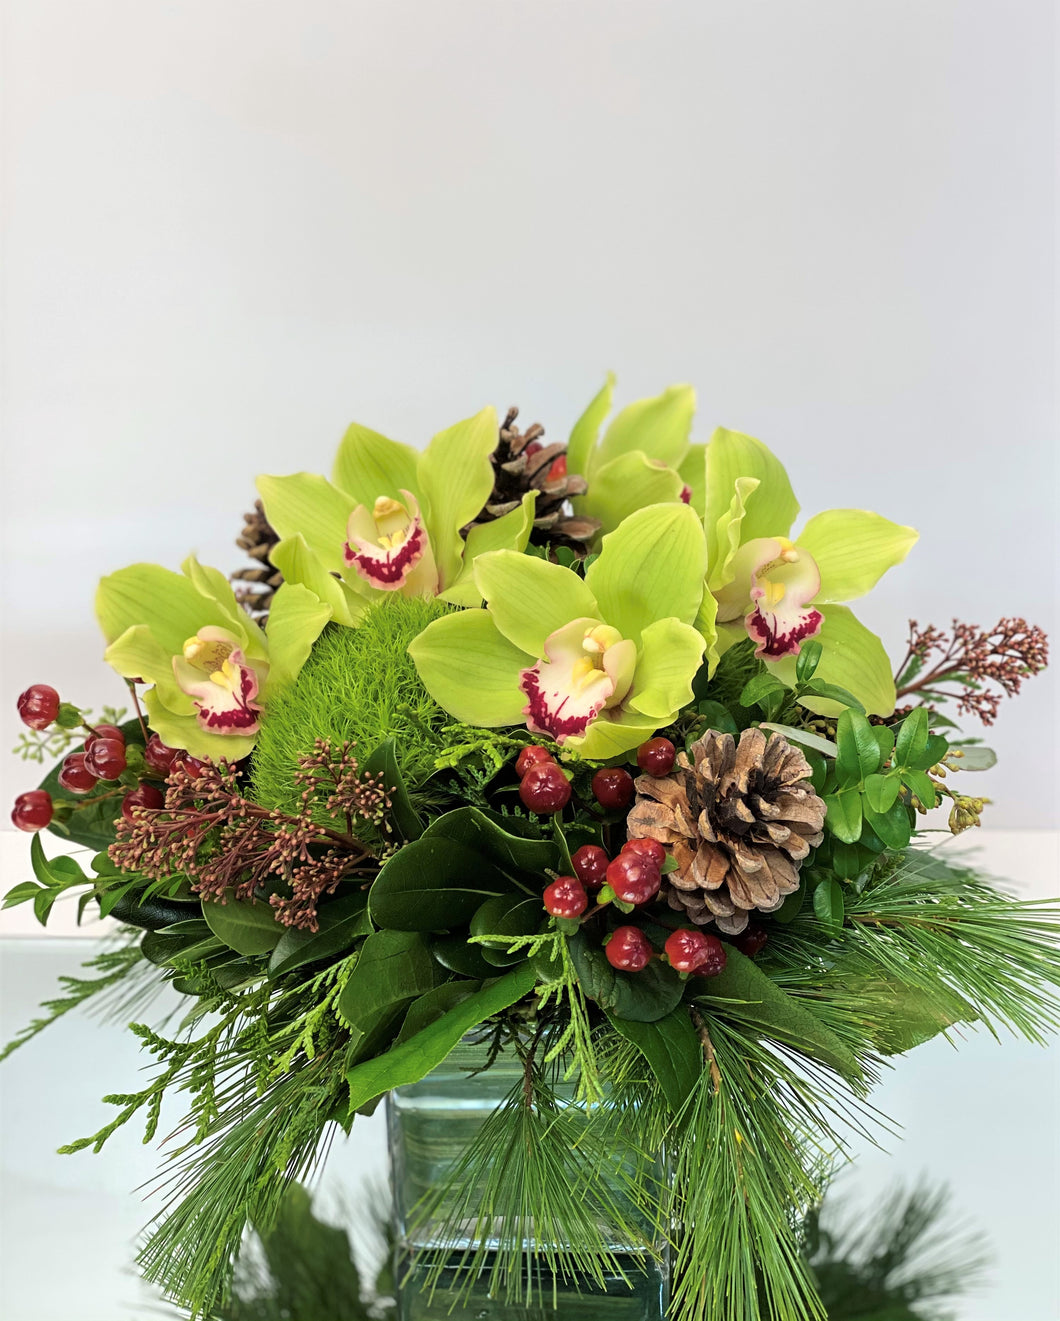 X5 - Lush Holiday Green Cymbidium Arrangement - Flowerplustoronto